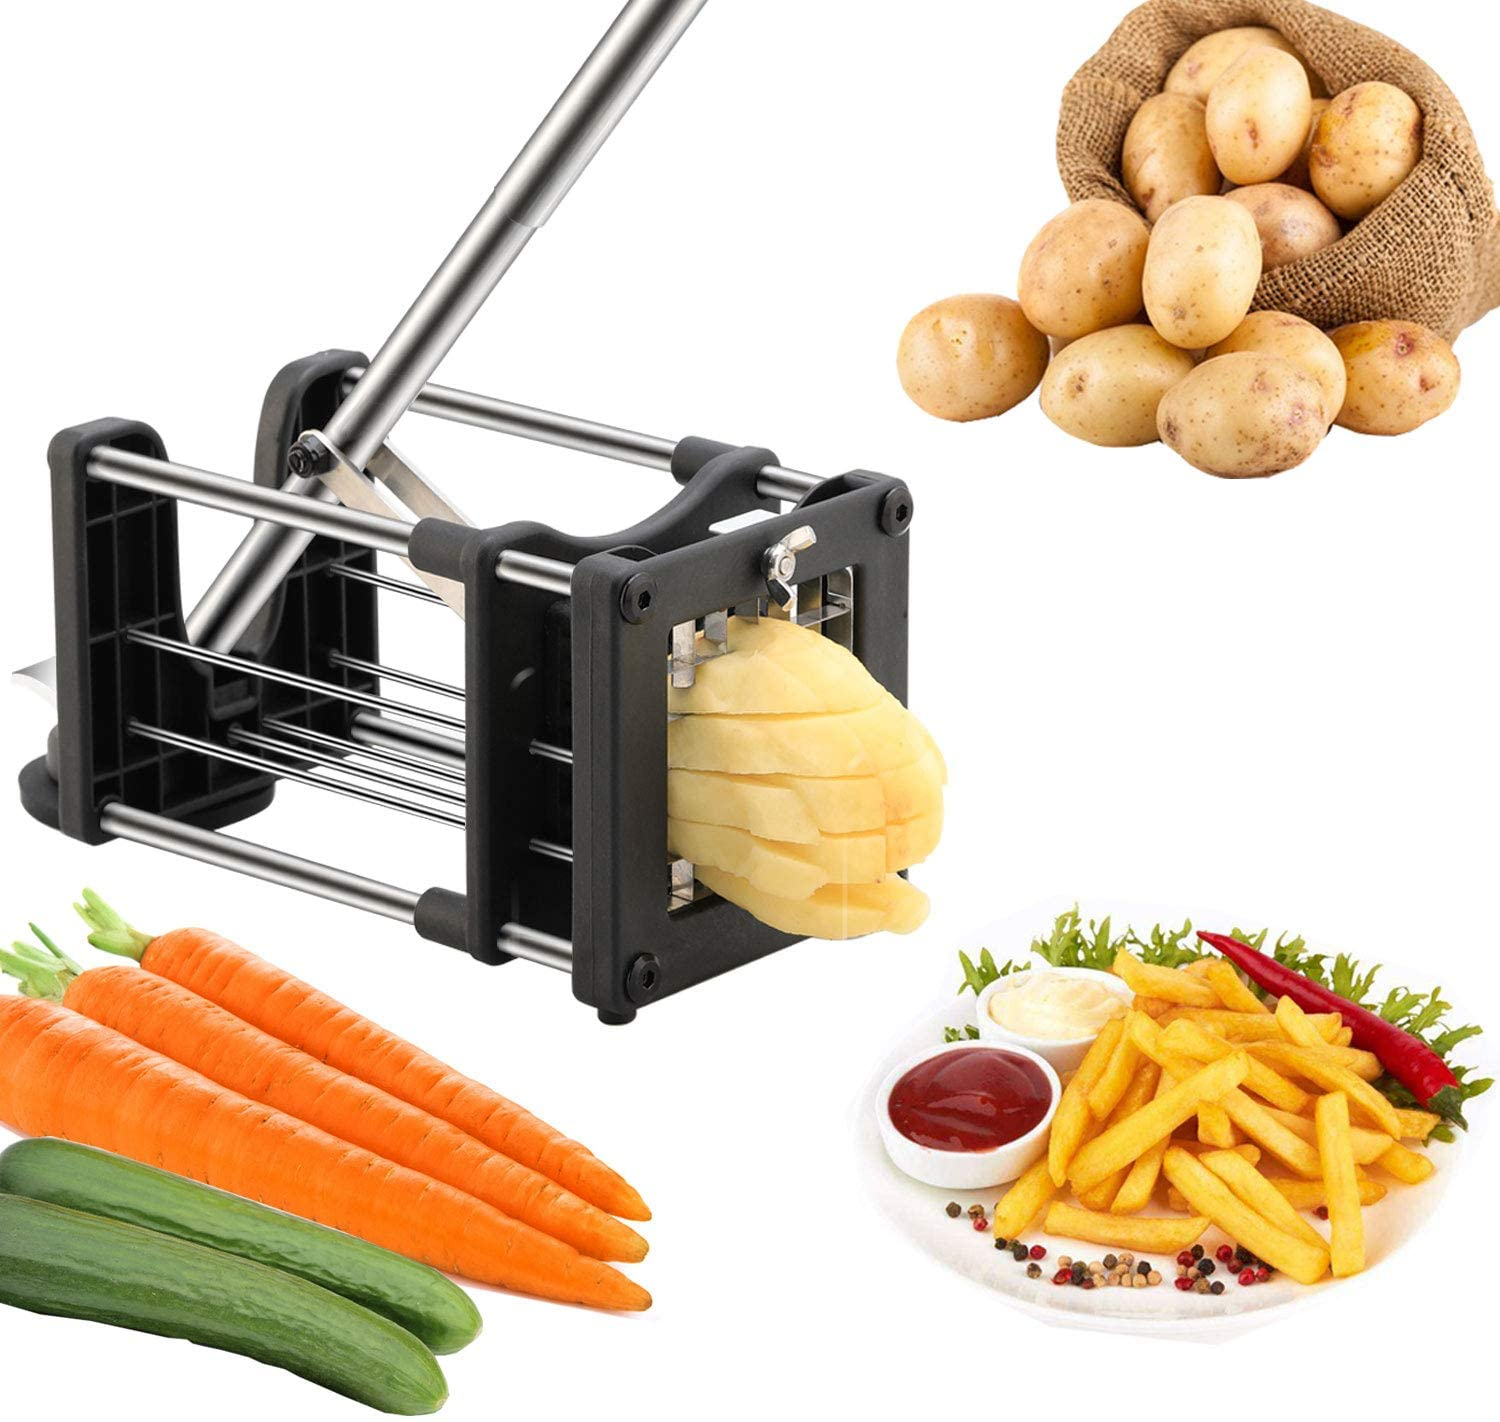 French Fry Cutter, Meshist Potato Cutter with Upgraded Commercial Stainless Steel Blades, Easy to Clean Potato slicer Perfect for Potatoes, Carrots, Cucumbers